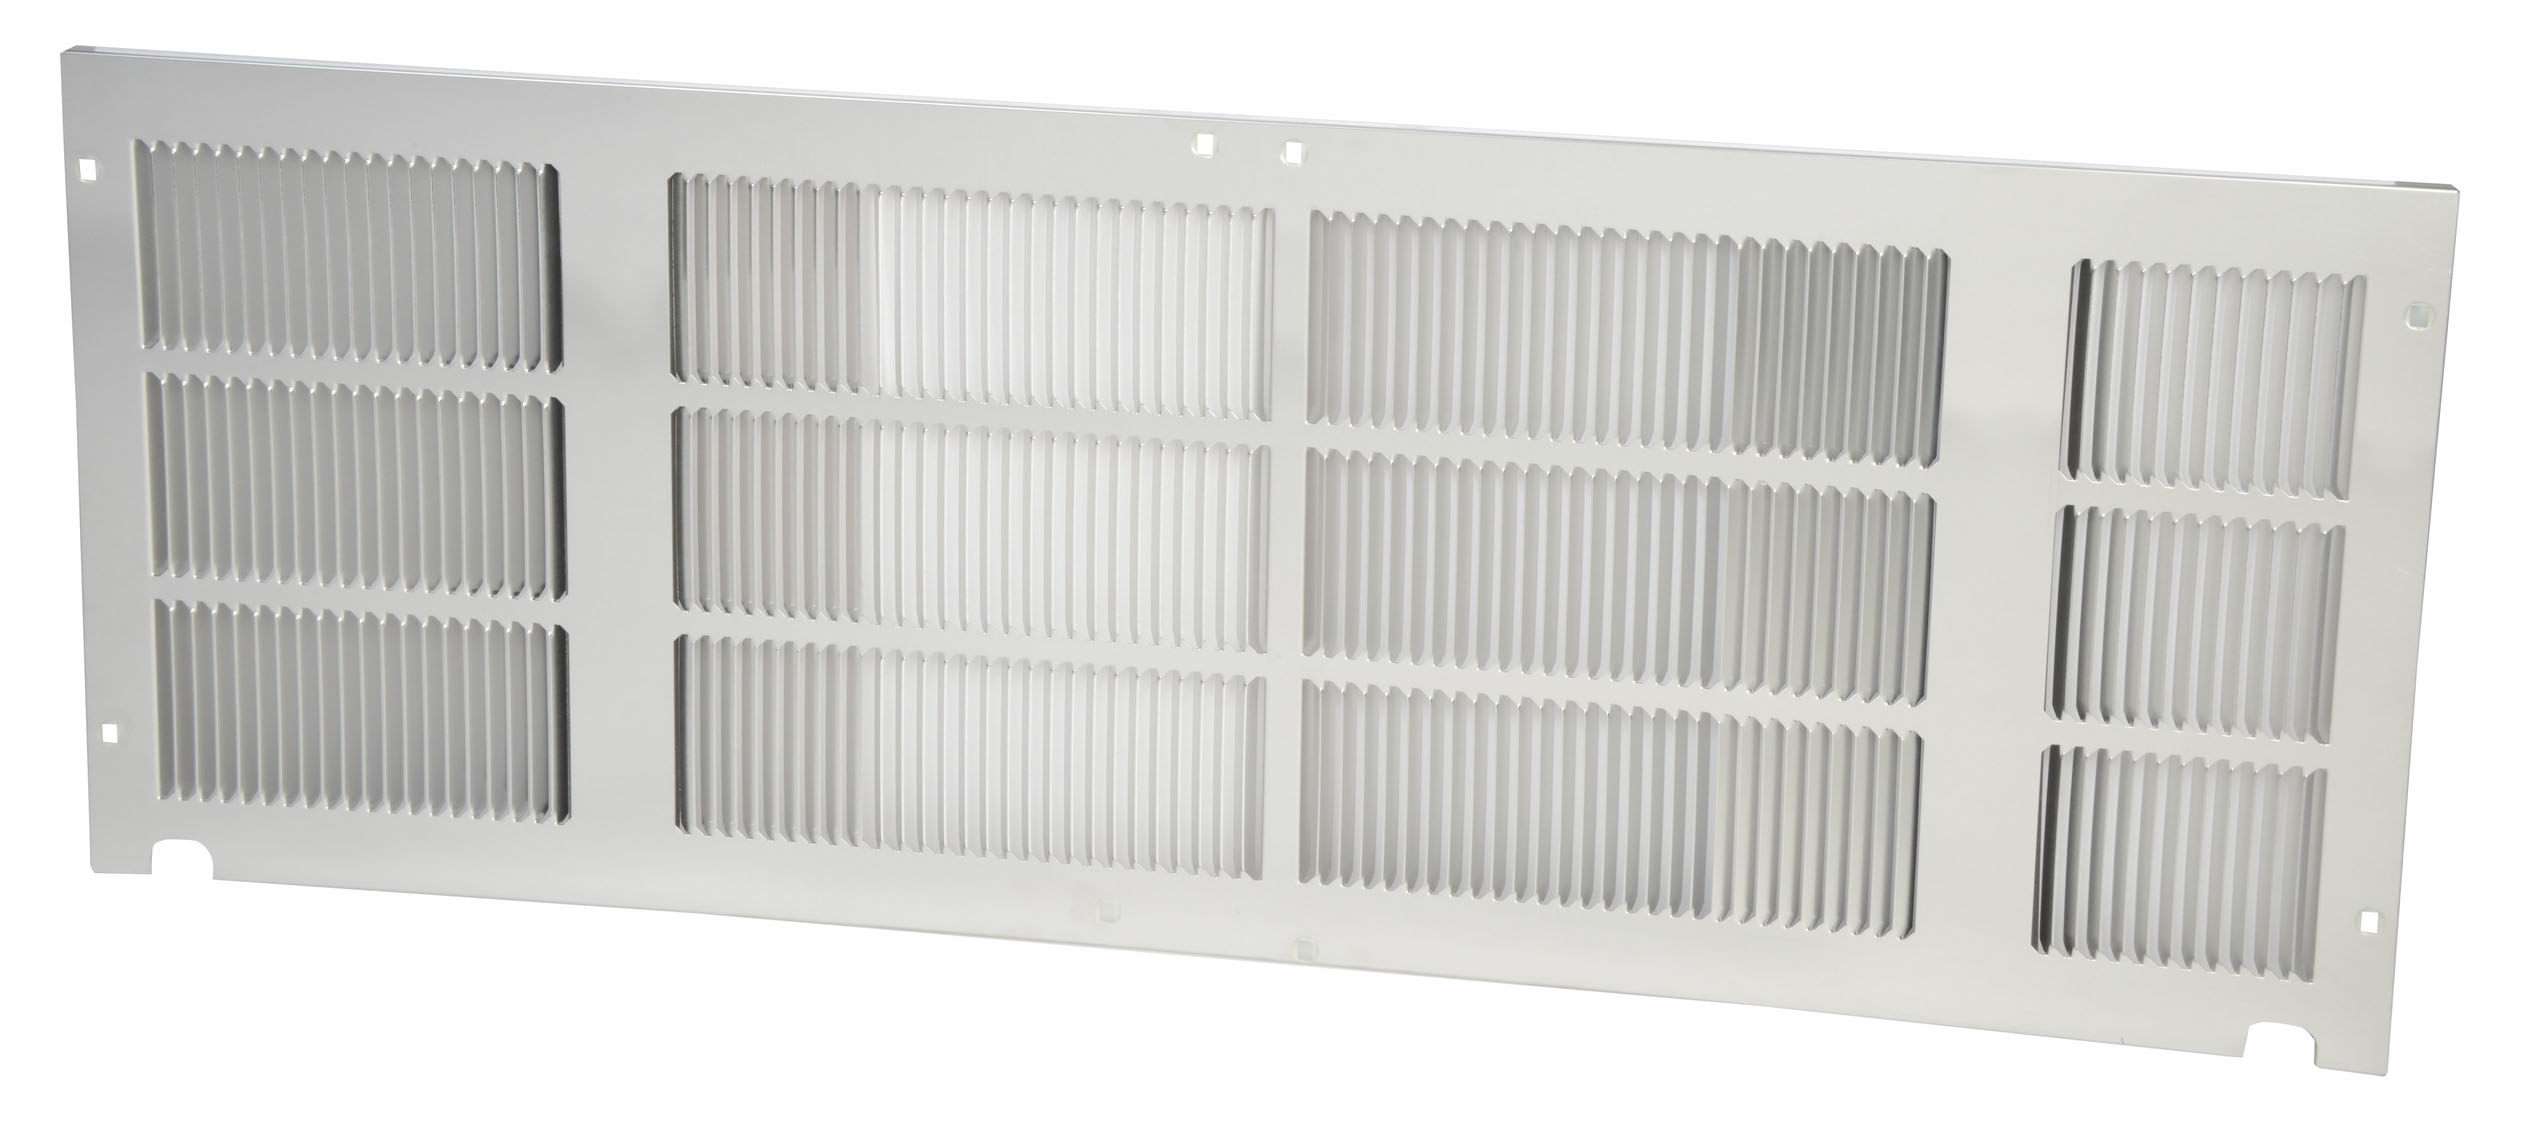 """Hotpoint RAG70 42"""" Stamped Aluminum Exterior Rear Grille"""